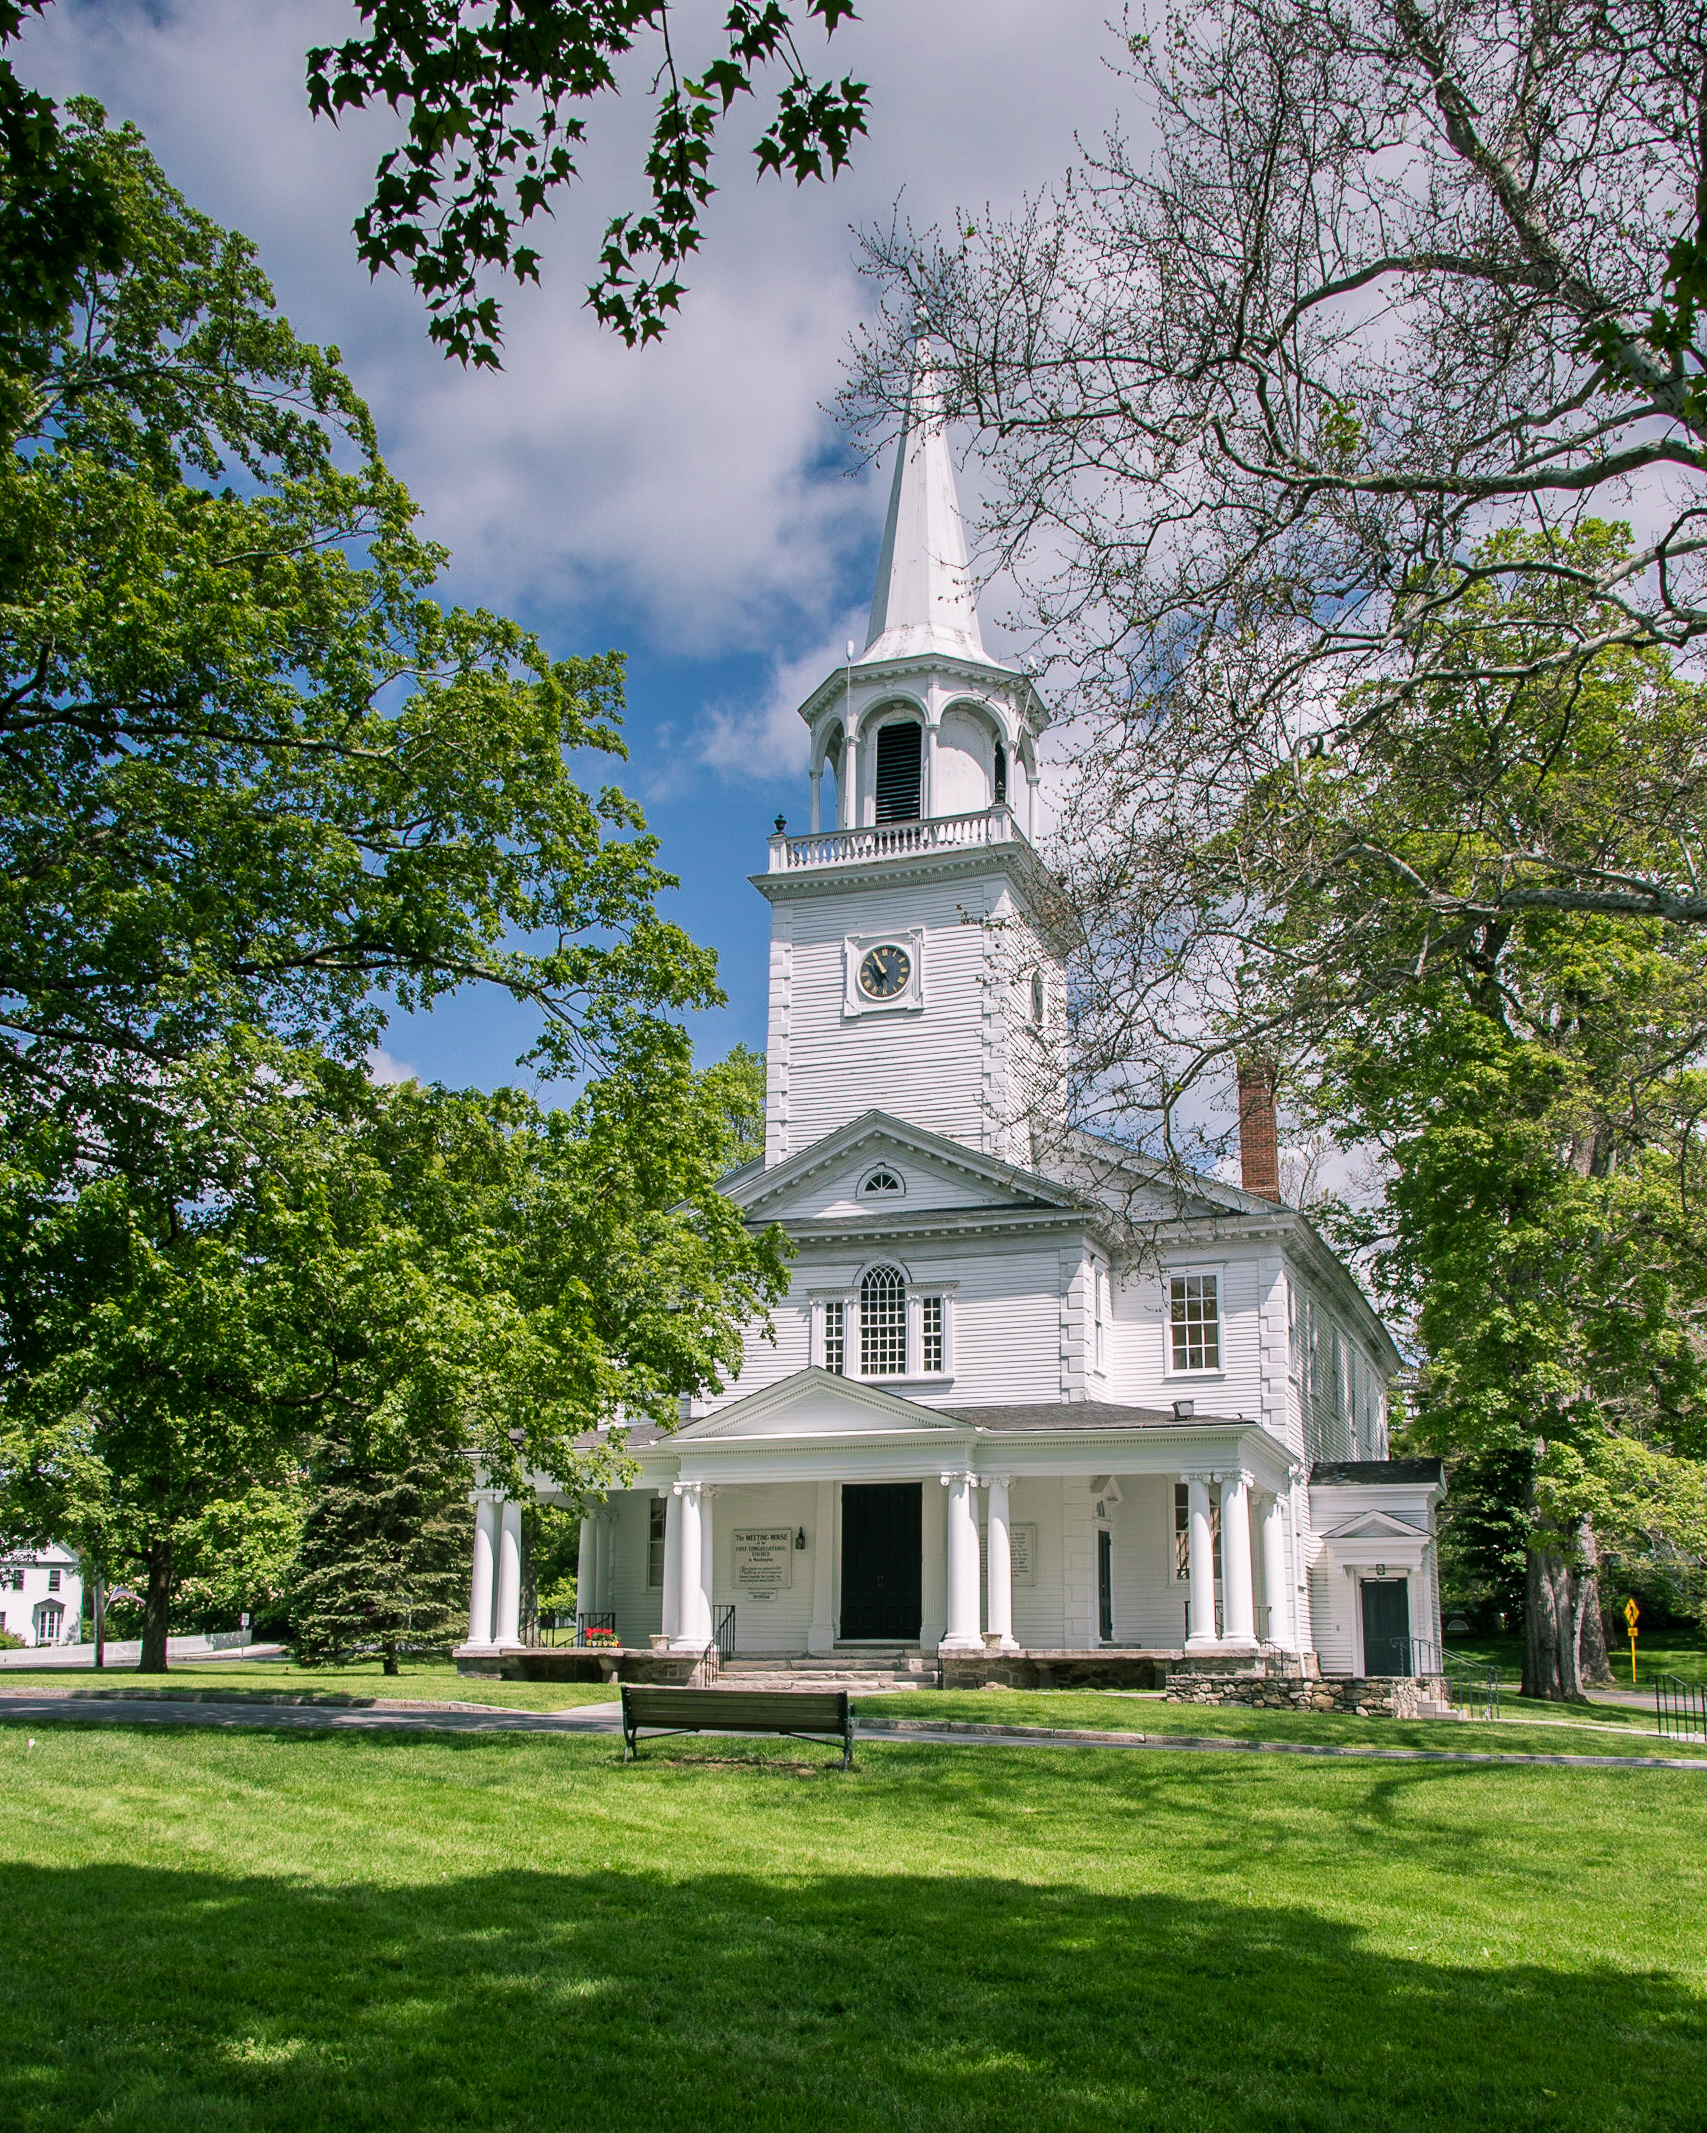 The Meeting House on the Washington Green is the historic icon of an idyllic New England countryside.